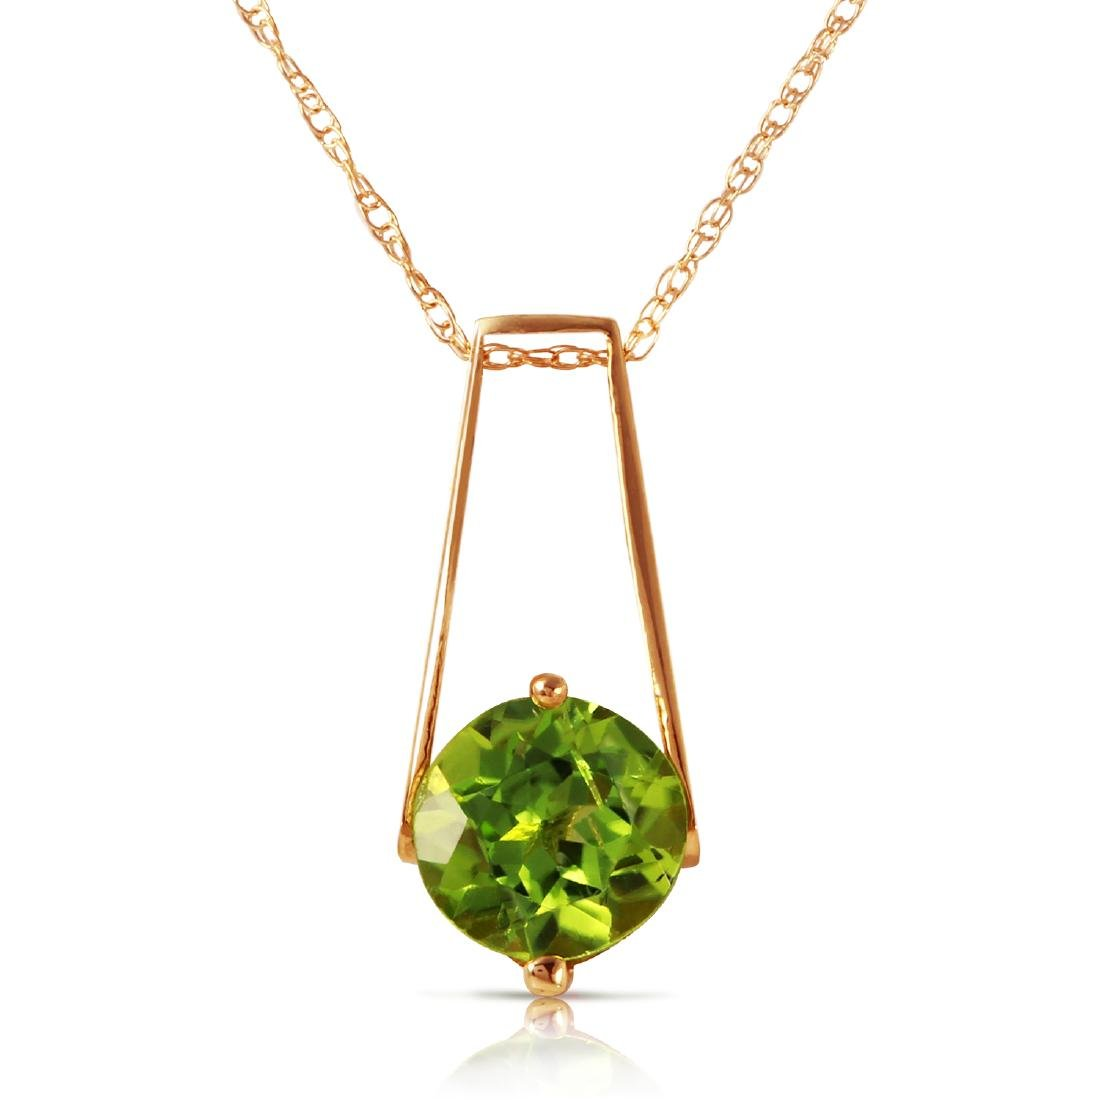 Genuine 1.45 ctw Peridot Necklace Jewelry 14KT Rose